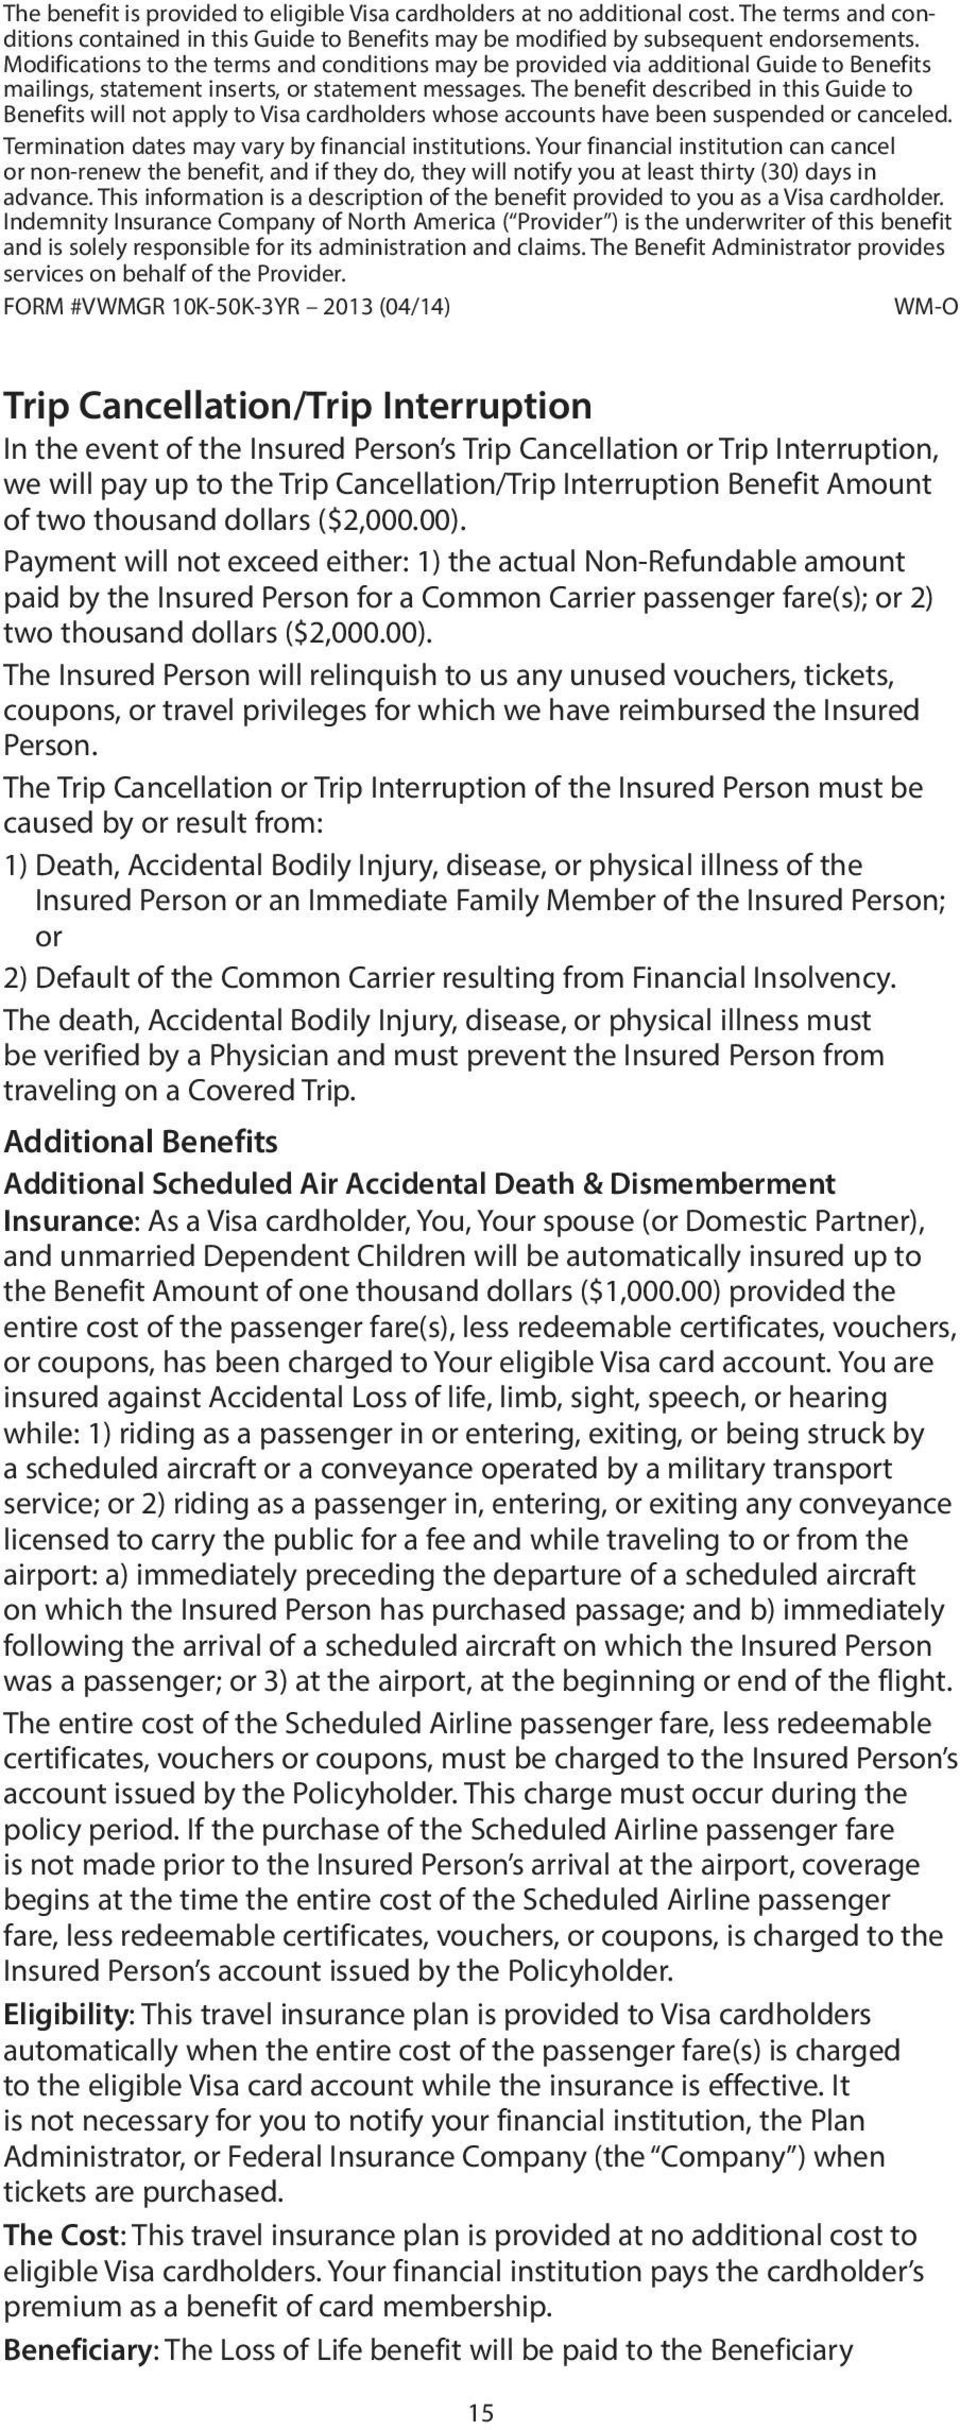 The benefit described in this Guide to Benefits will not apply to Visa cardholders whose accounts have been suspended or canceled. Termination dates may vary by financial institutions.